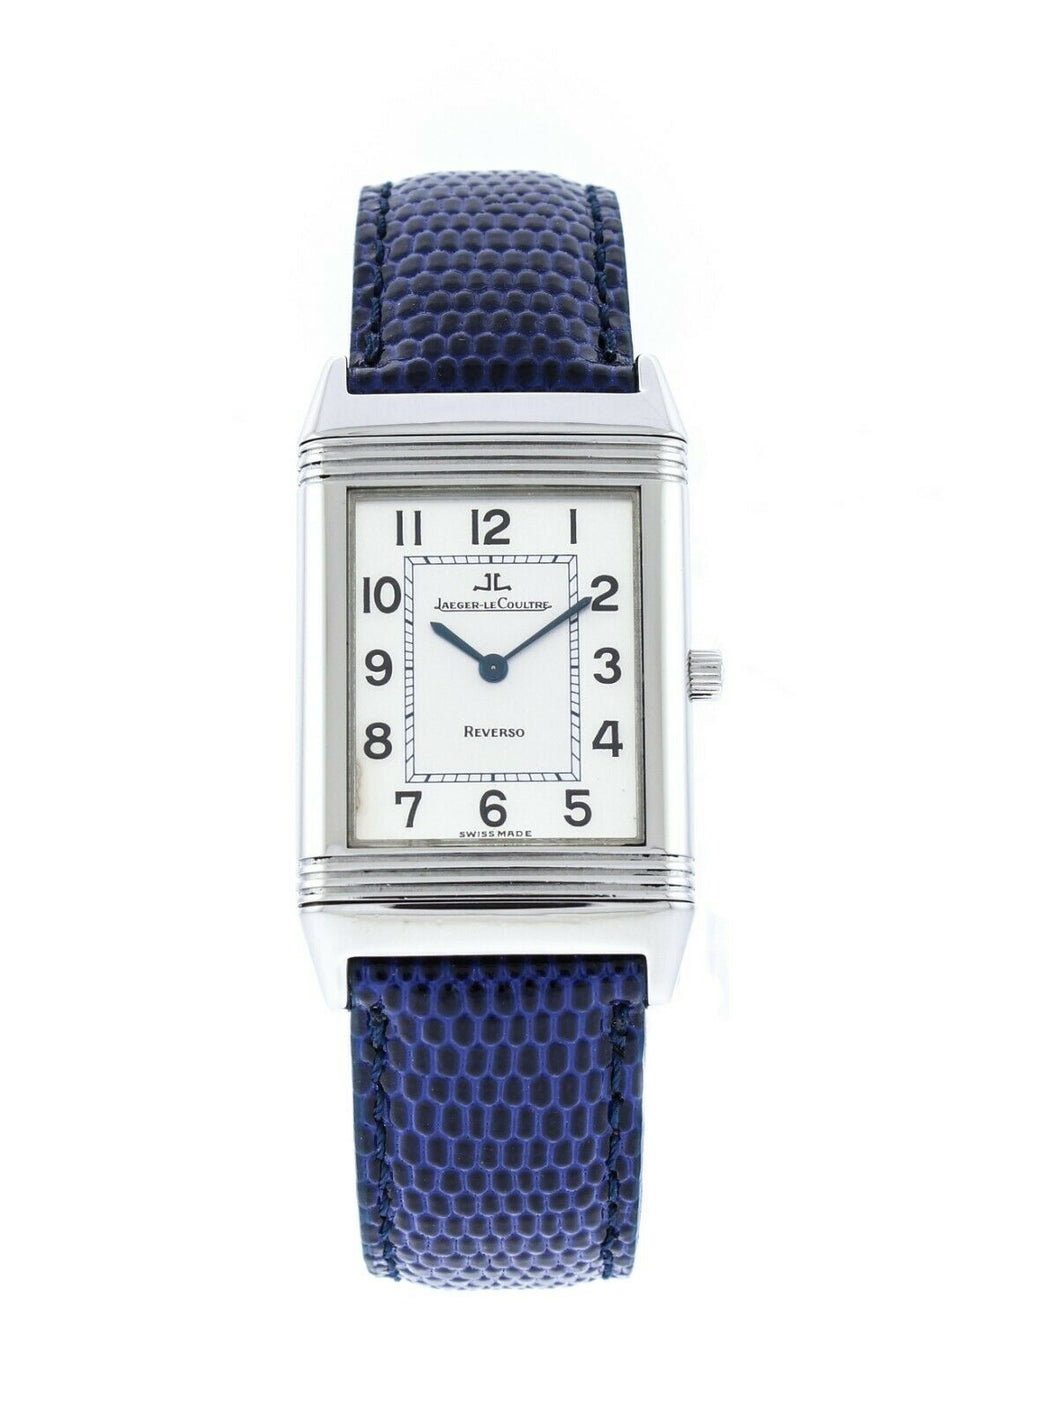 Jaeger LeCoultre Reverso Quartz Blue Leather Strap Watch Q2518420